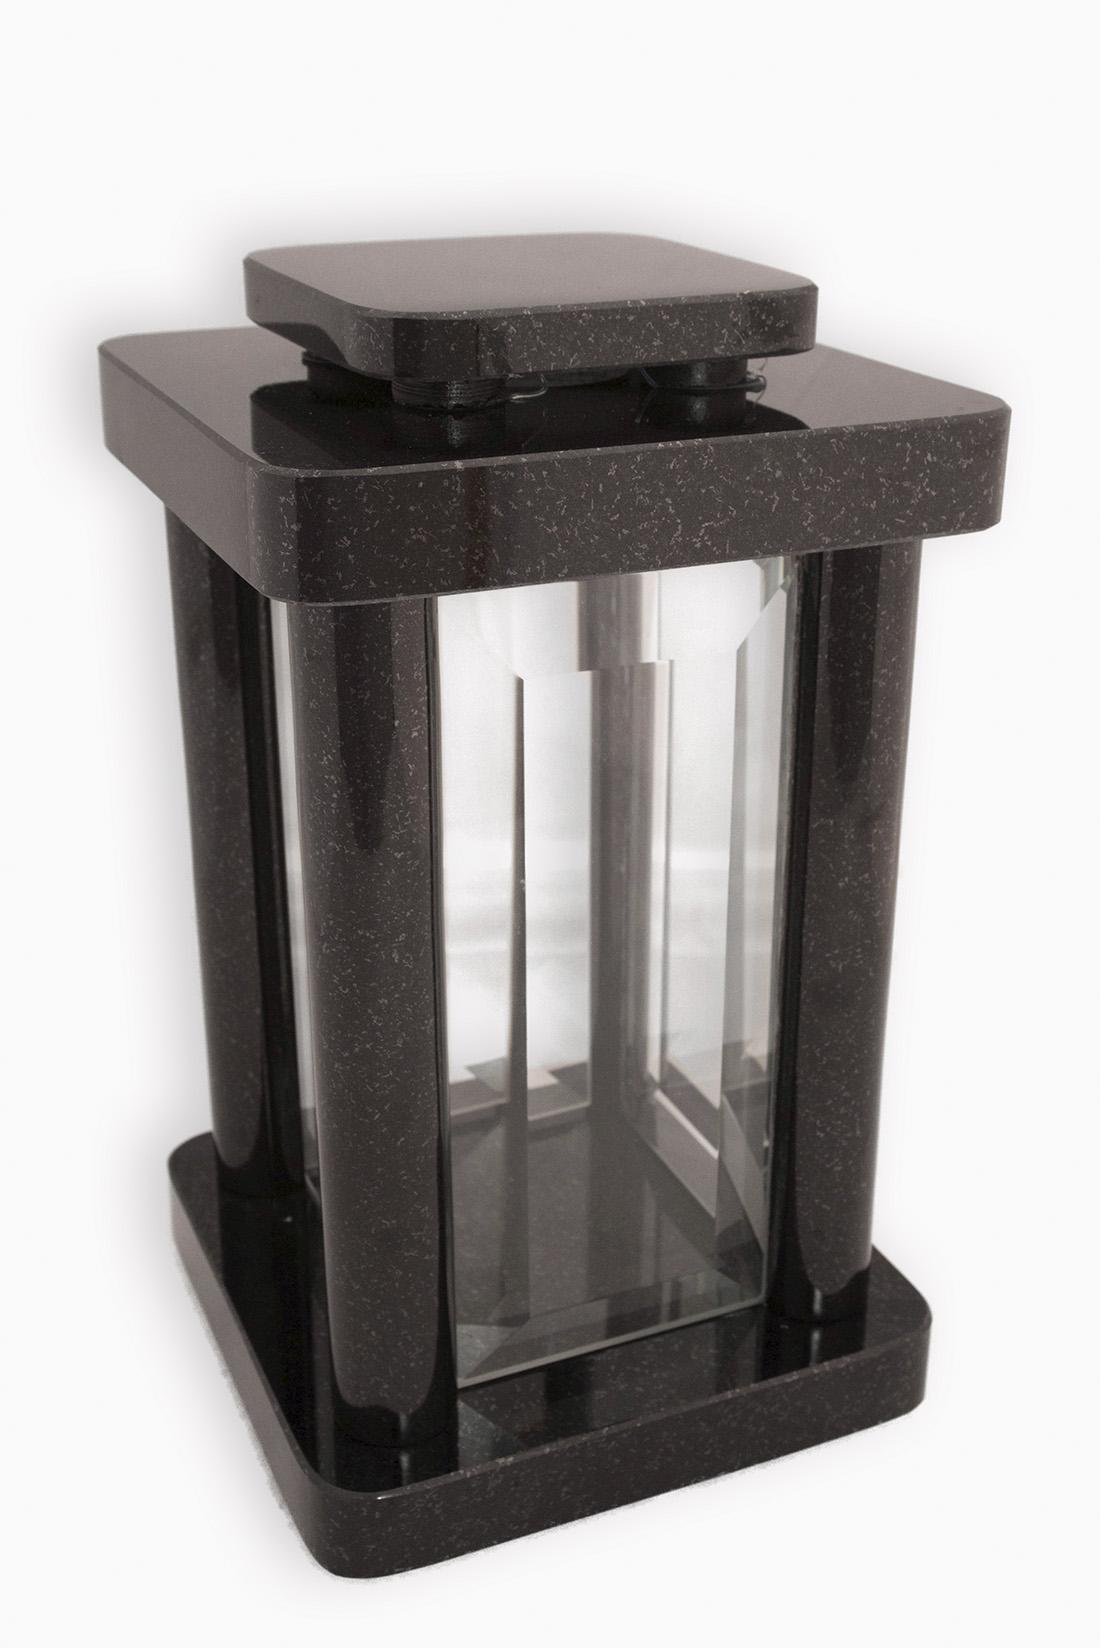 Accessoires grafmonument lantaarn zwart + glas (AS026)